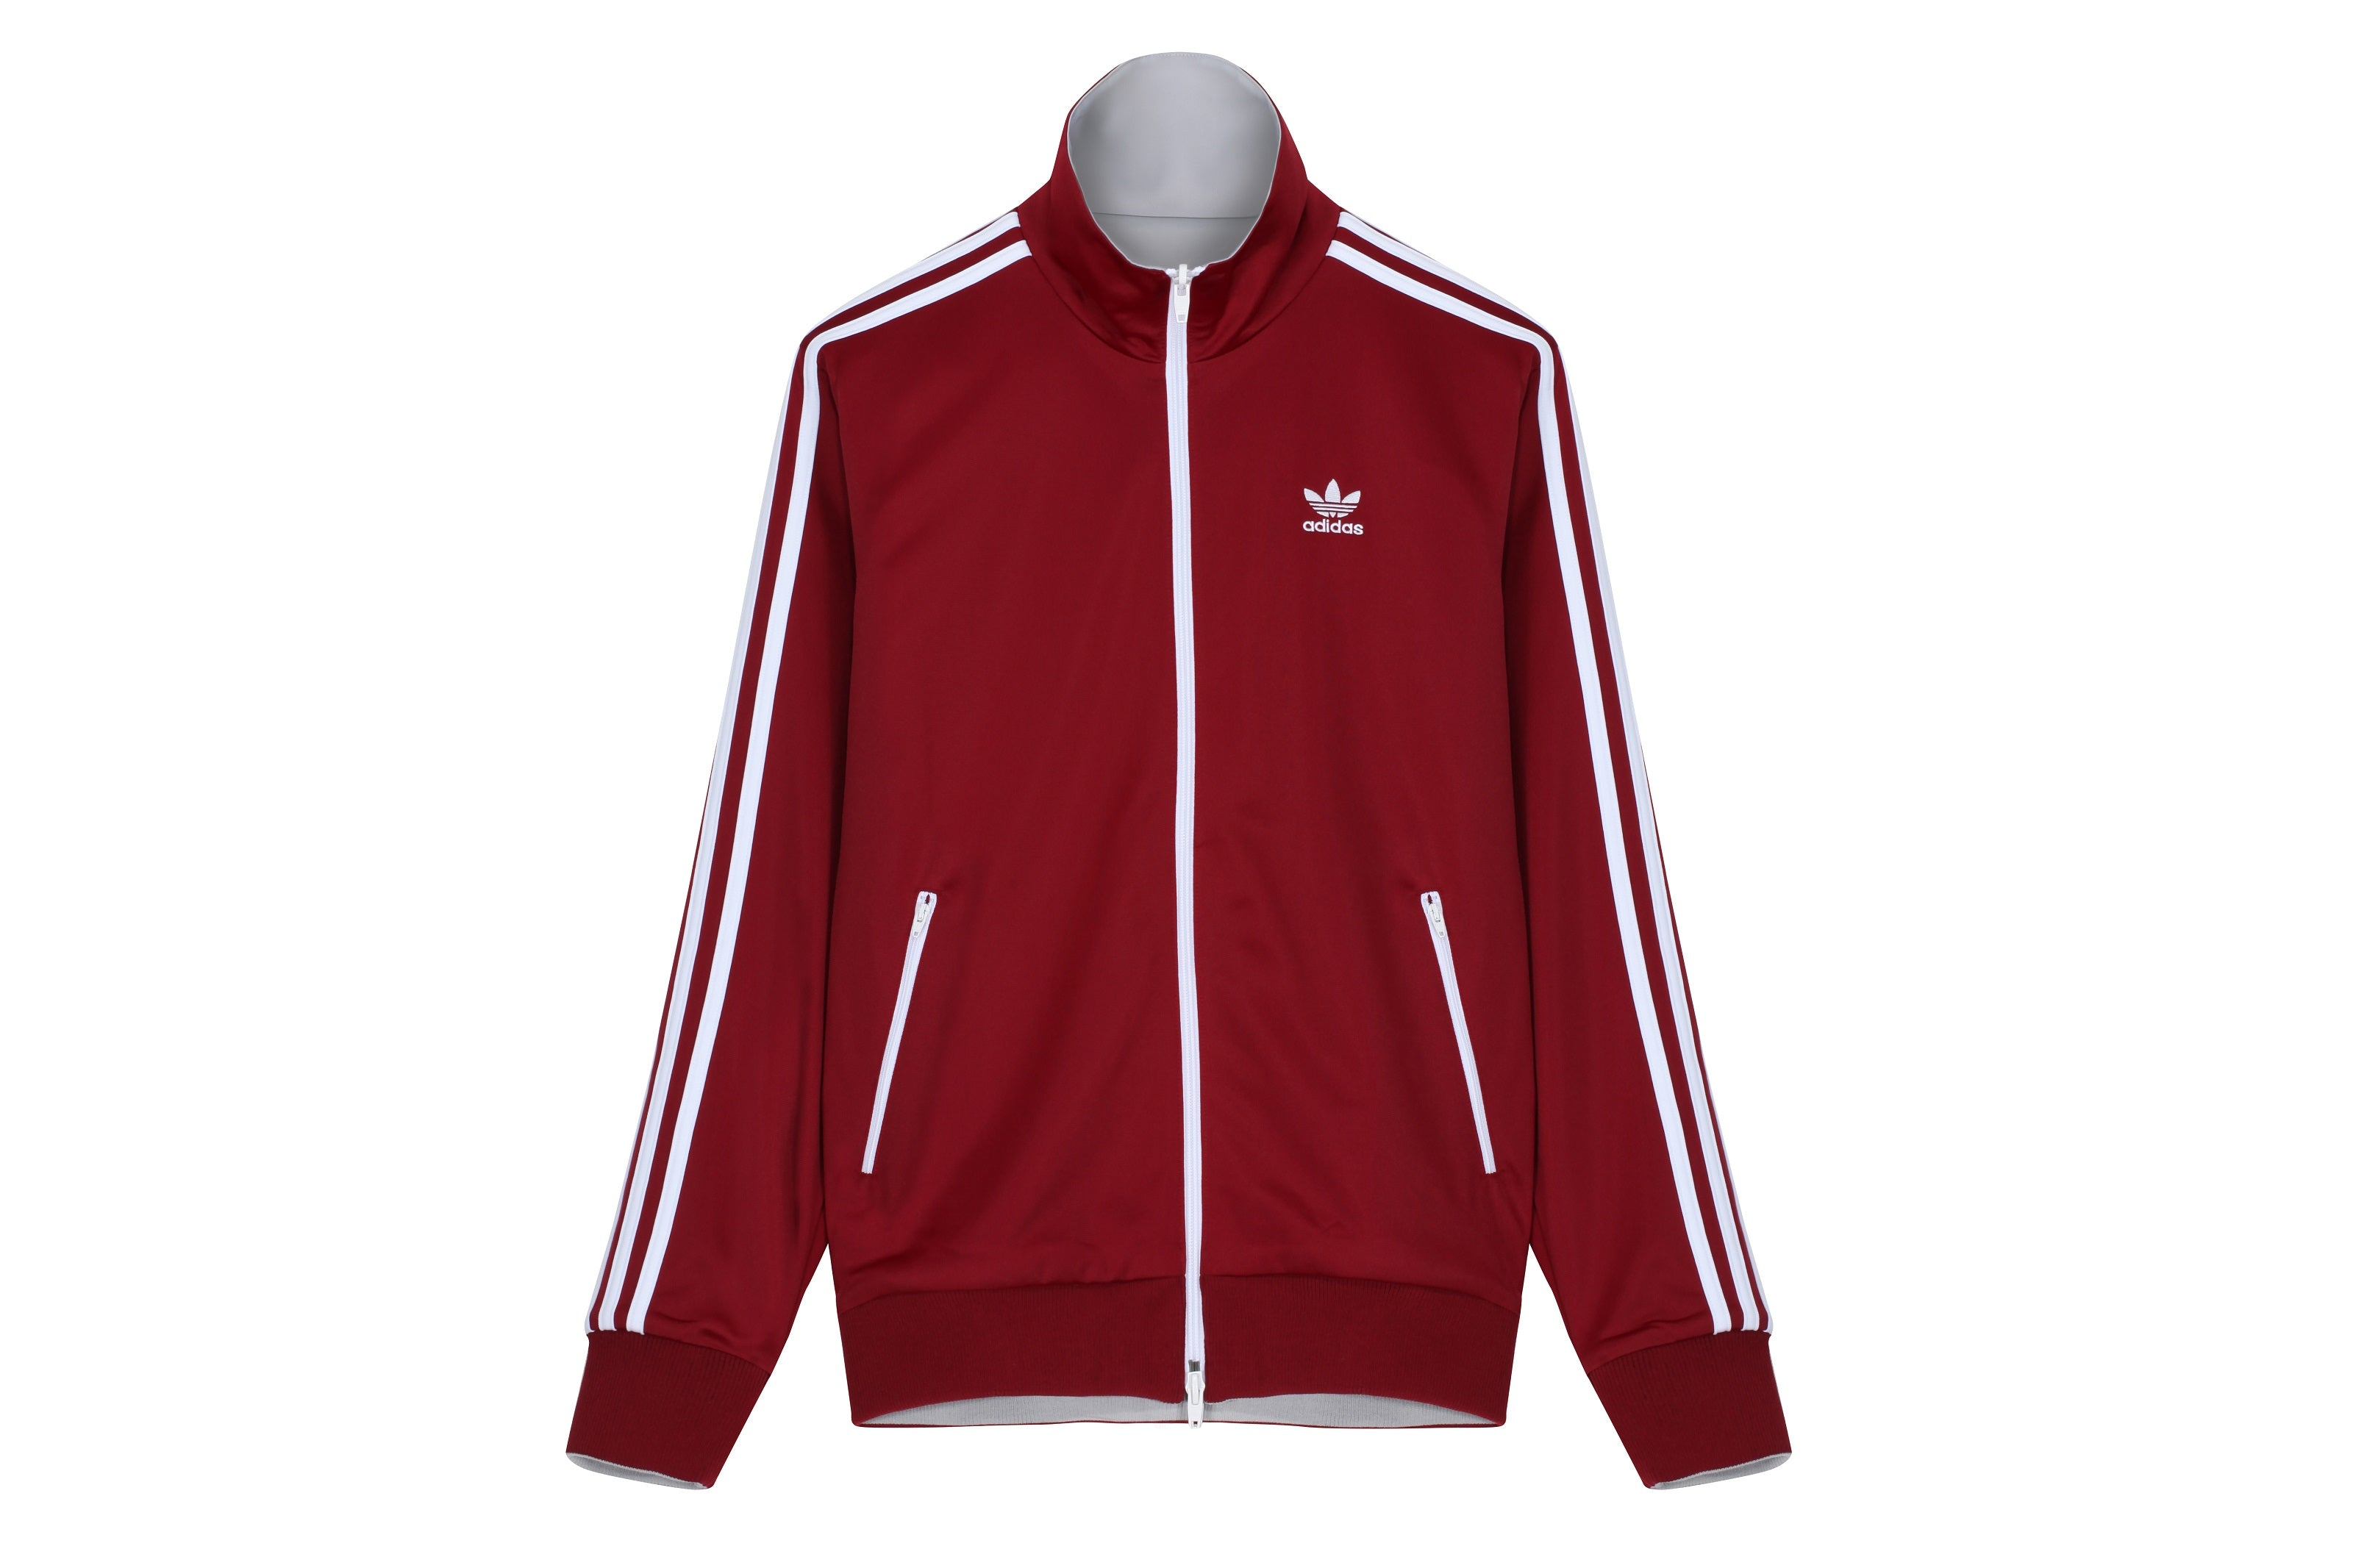 Adidas Firebird Track Top x Human Made